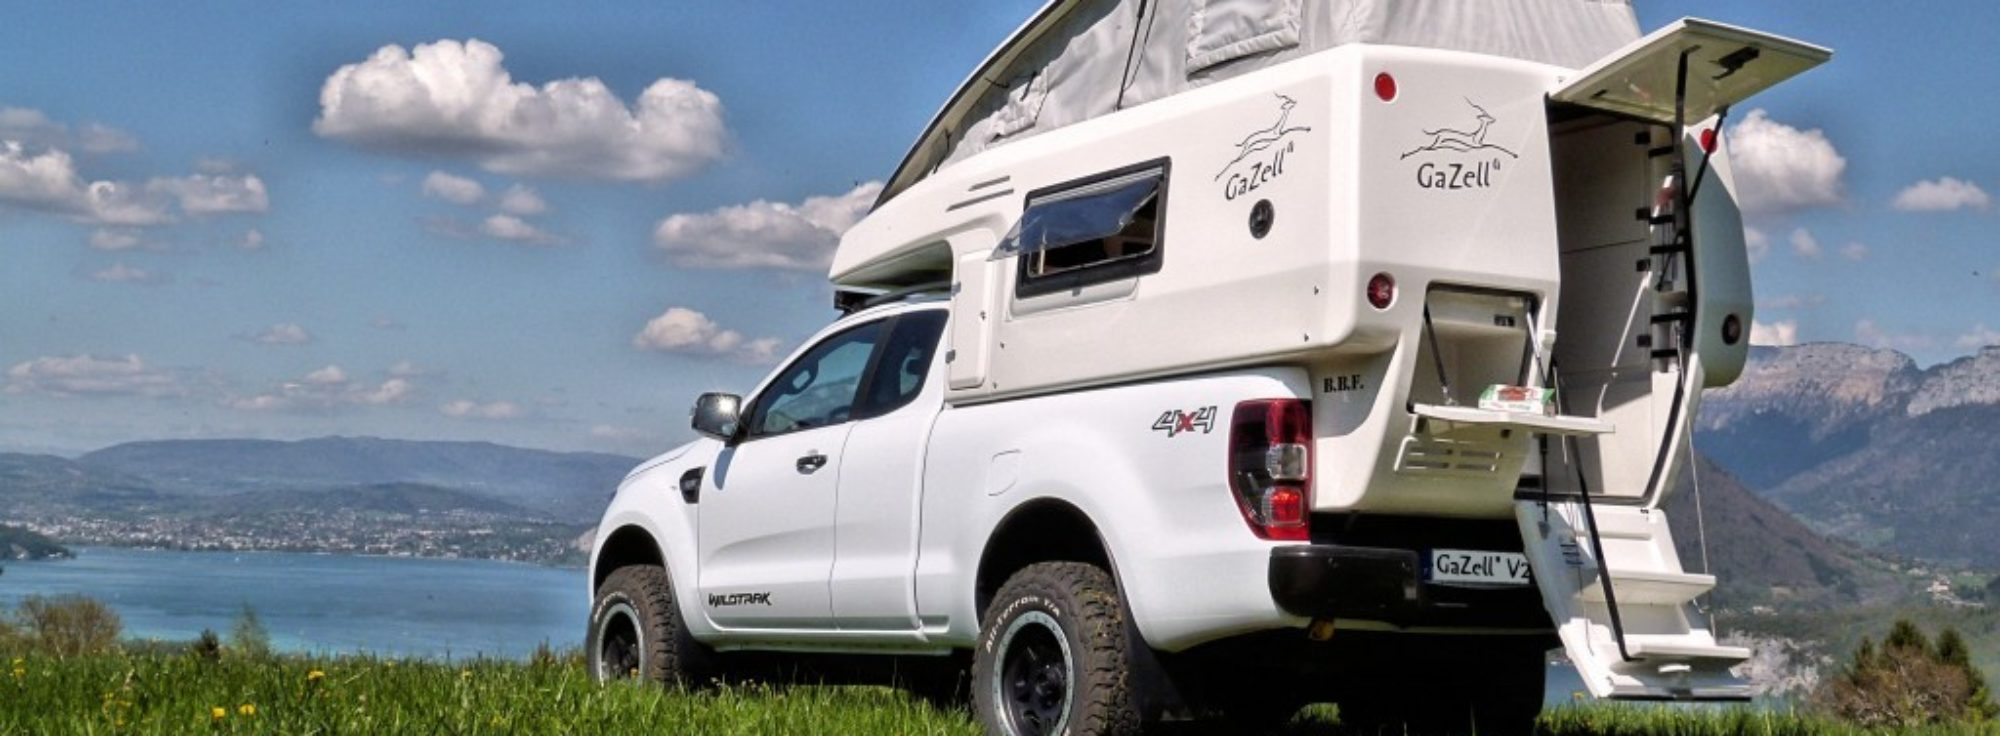 SBS Adventure Campers UK